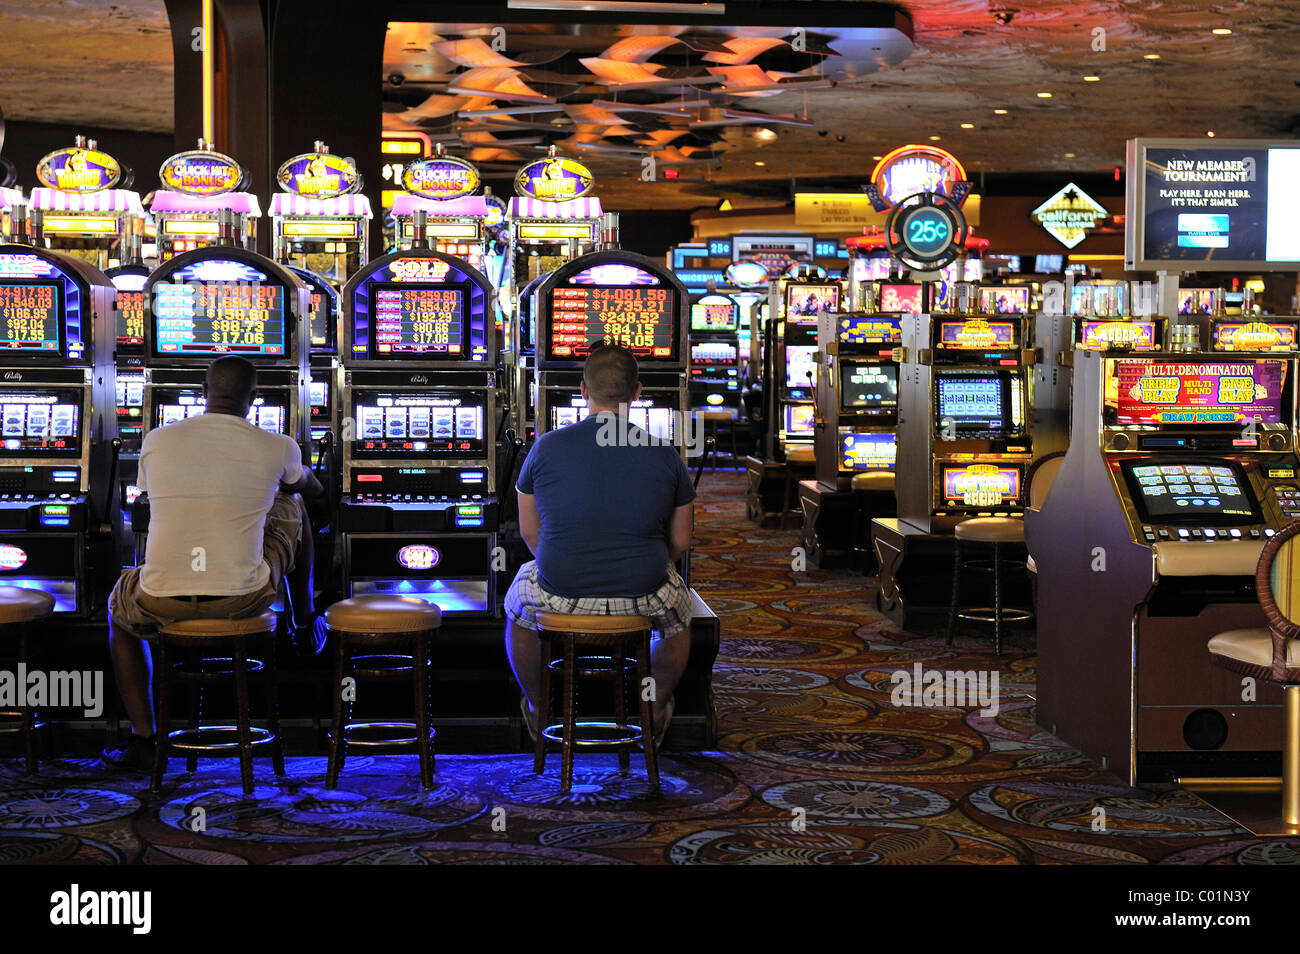 Slot machines in the 5-star Mirage Hotel, Las Vegas ...